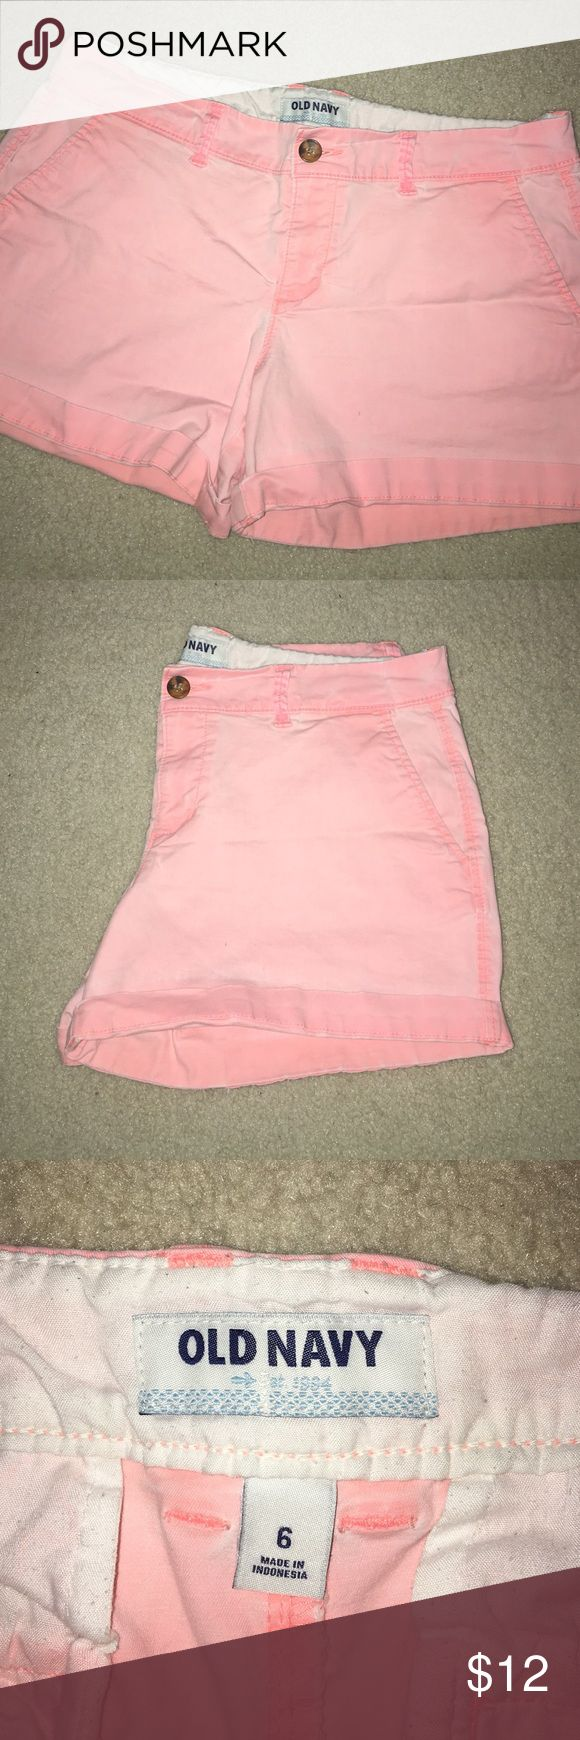 Old Navy Women's Peach Shorts These shorts are slightly used, however, still great! No stains! The color is supposed to look faded FYI! Old Navy Shorts Bermudas